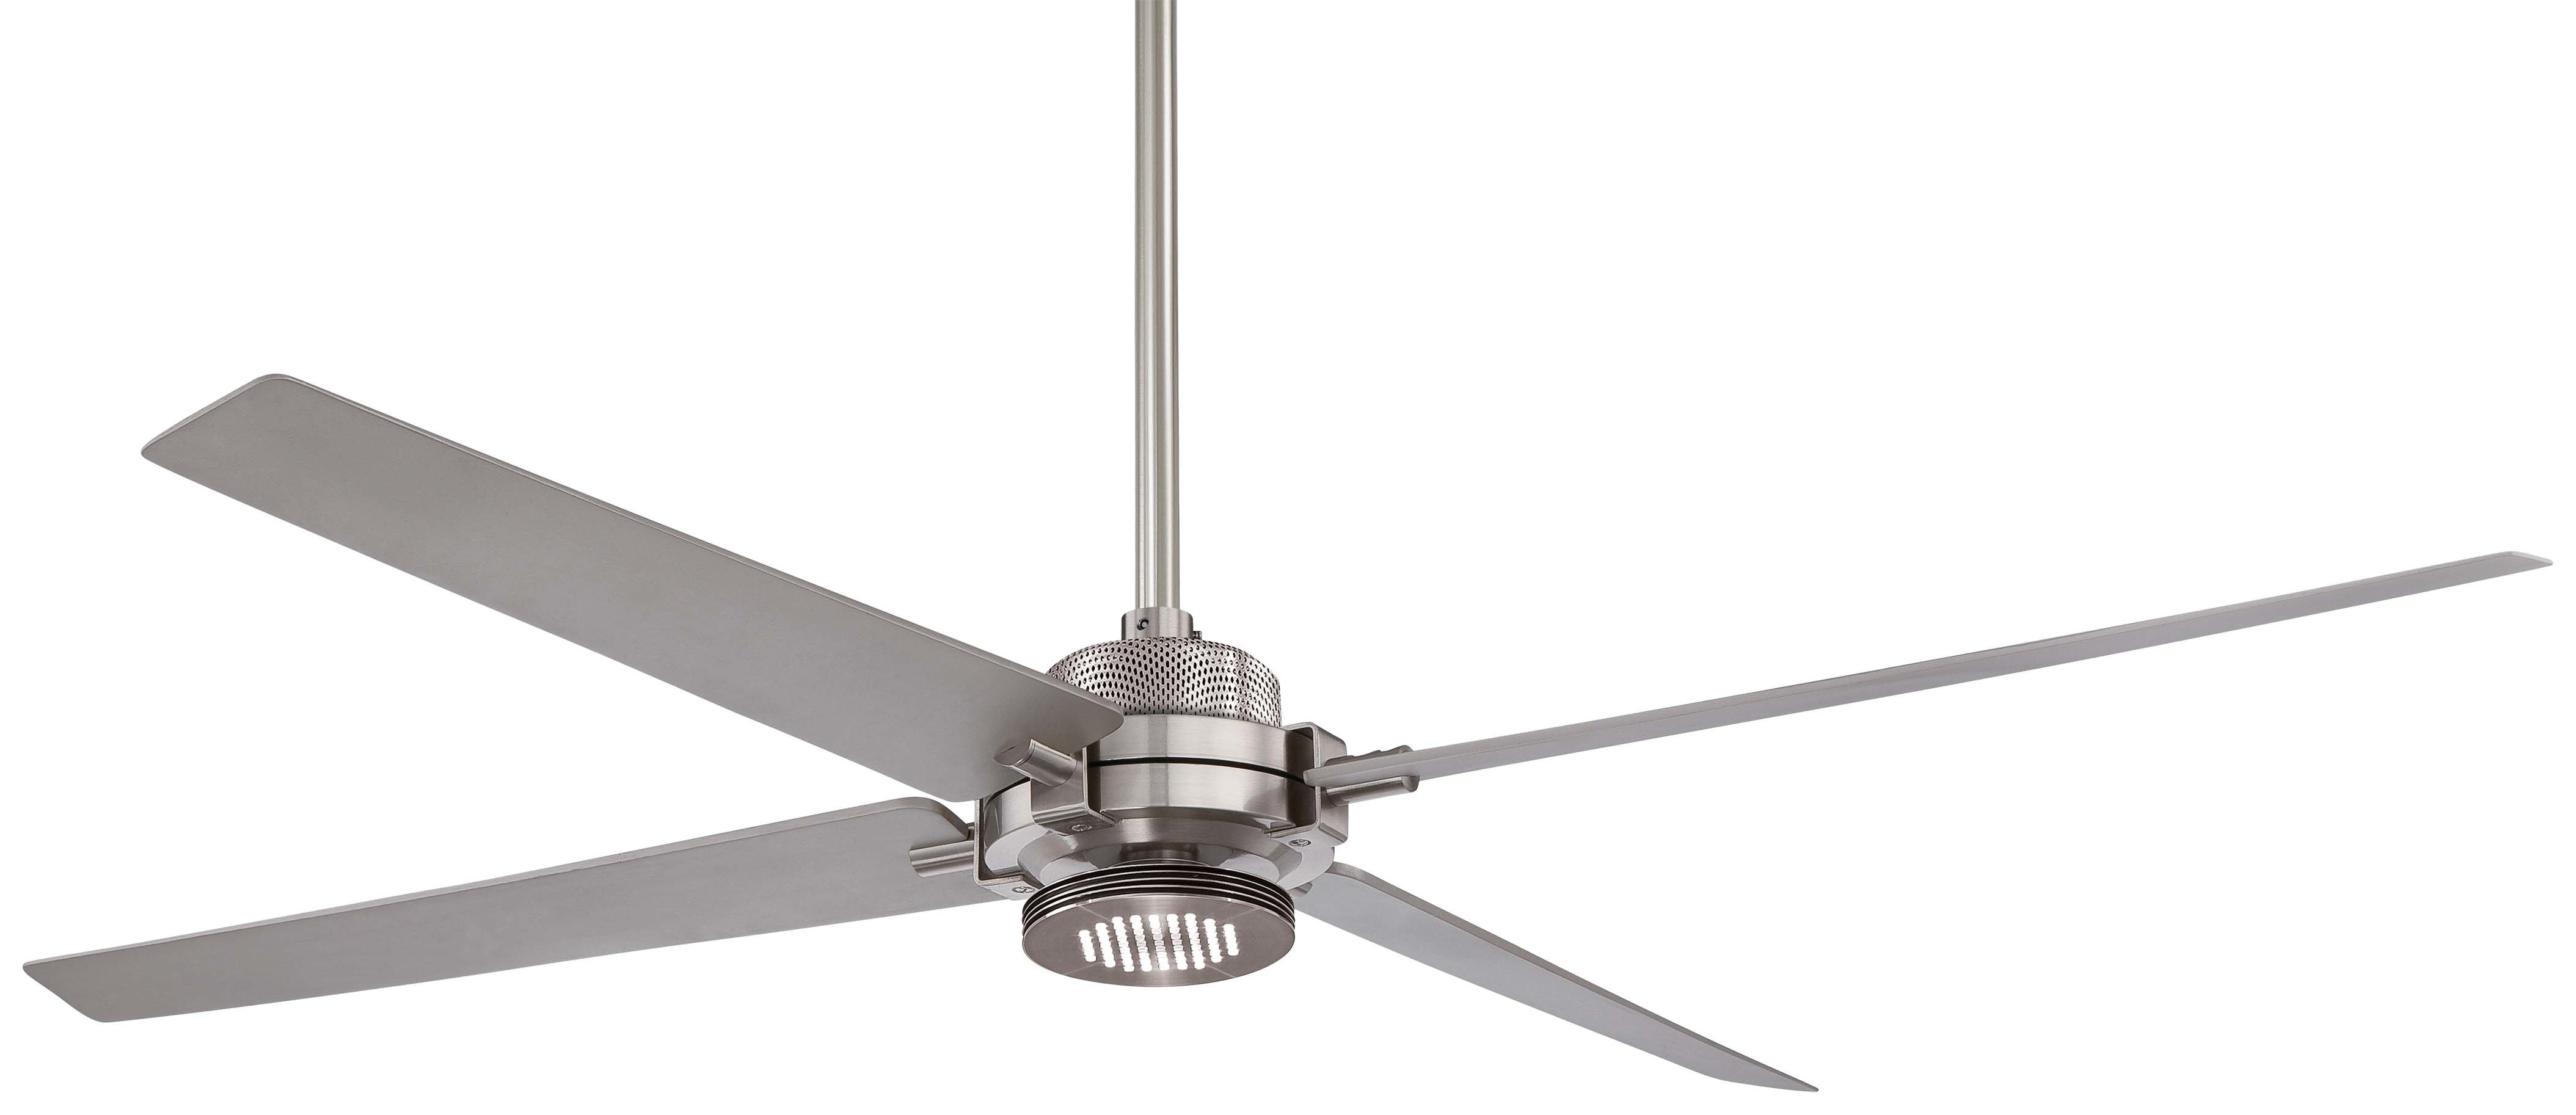 "Raptor 5 Blade Ceiling Fans With Most Recently Released 60"" Spectre 4 Blade Led Ceiling Fan With Remote, Light Kit Included (View 12 of 20)"